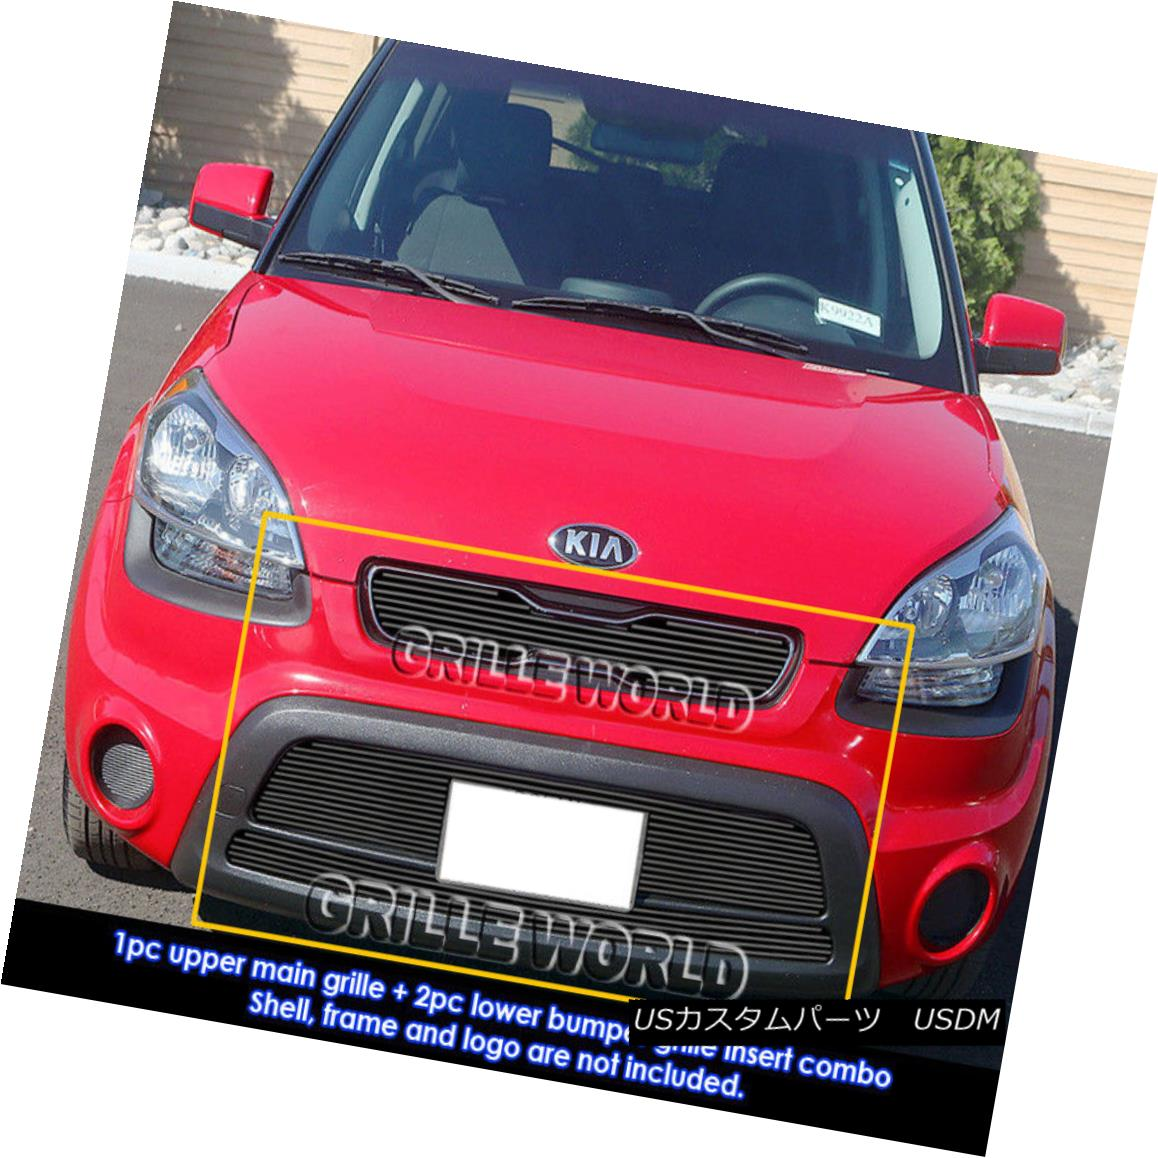 グリル For 2012-2013 Kia SOUL Bolt Over Black Billet Grill Insert Combo 2012-2013年Kia SOUL Bolt Over Black Billetグリルインサートコンボ